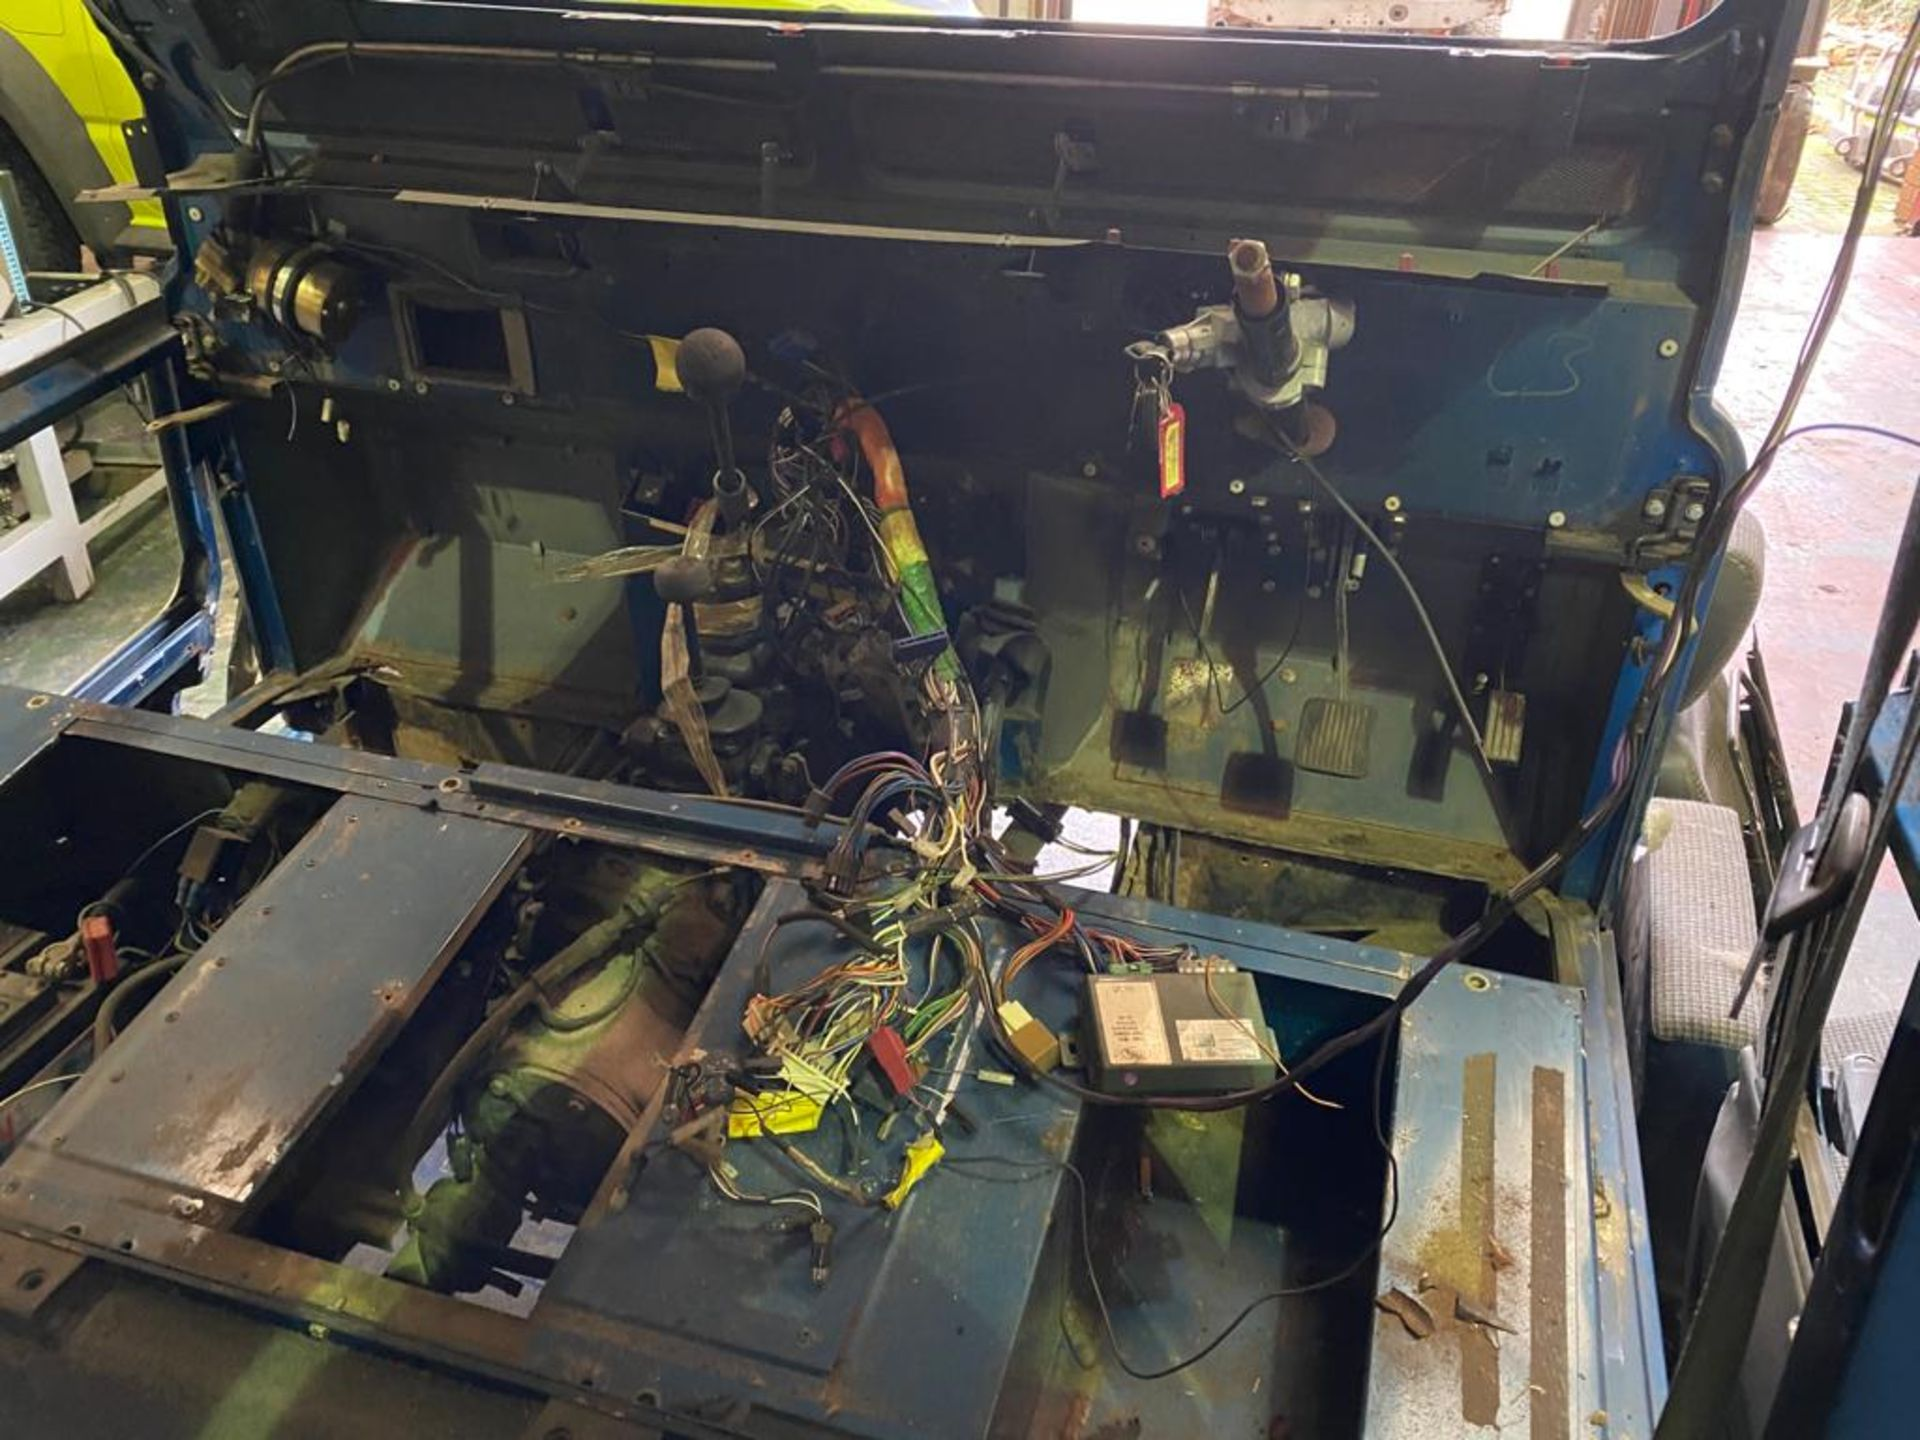 Land Rover 110 County, 300 TDI Engine Appears Mostly Complete - No Bumper, Bonnet, Glass etc As - Image 11 of 26